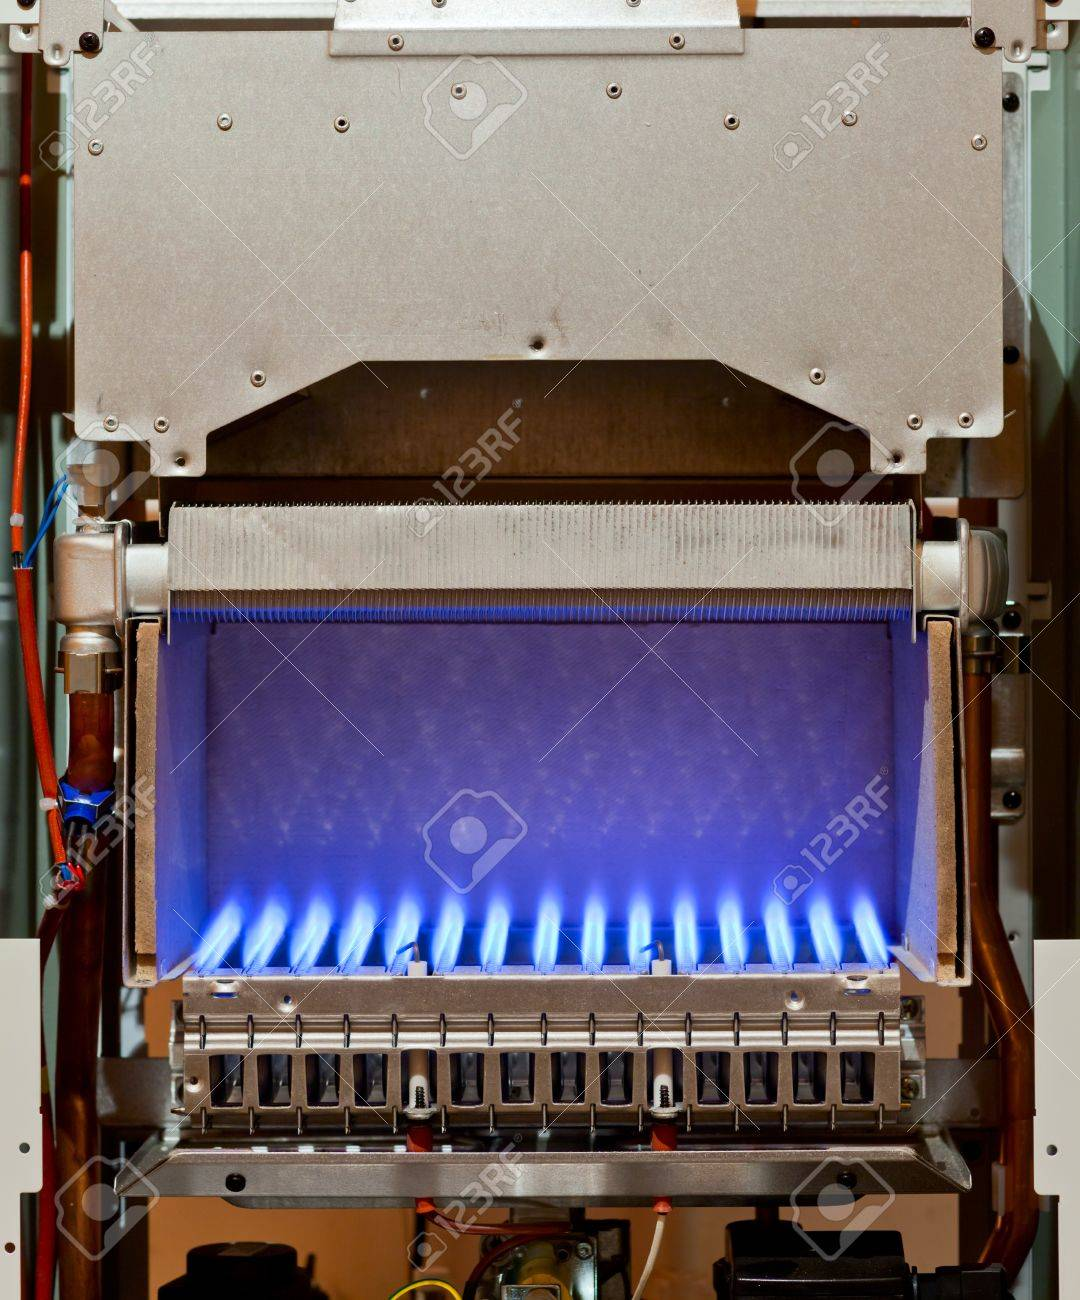 Gas Flame Inside Of The Gas Boiler Stock Photo, Picture And Royalty ...